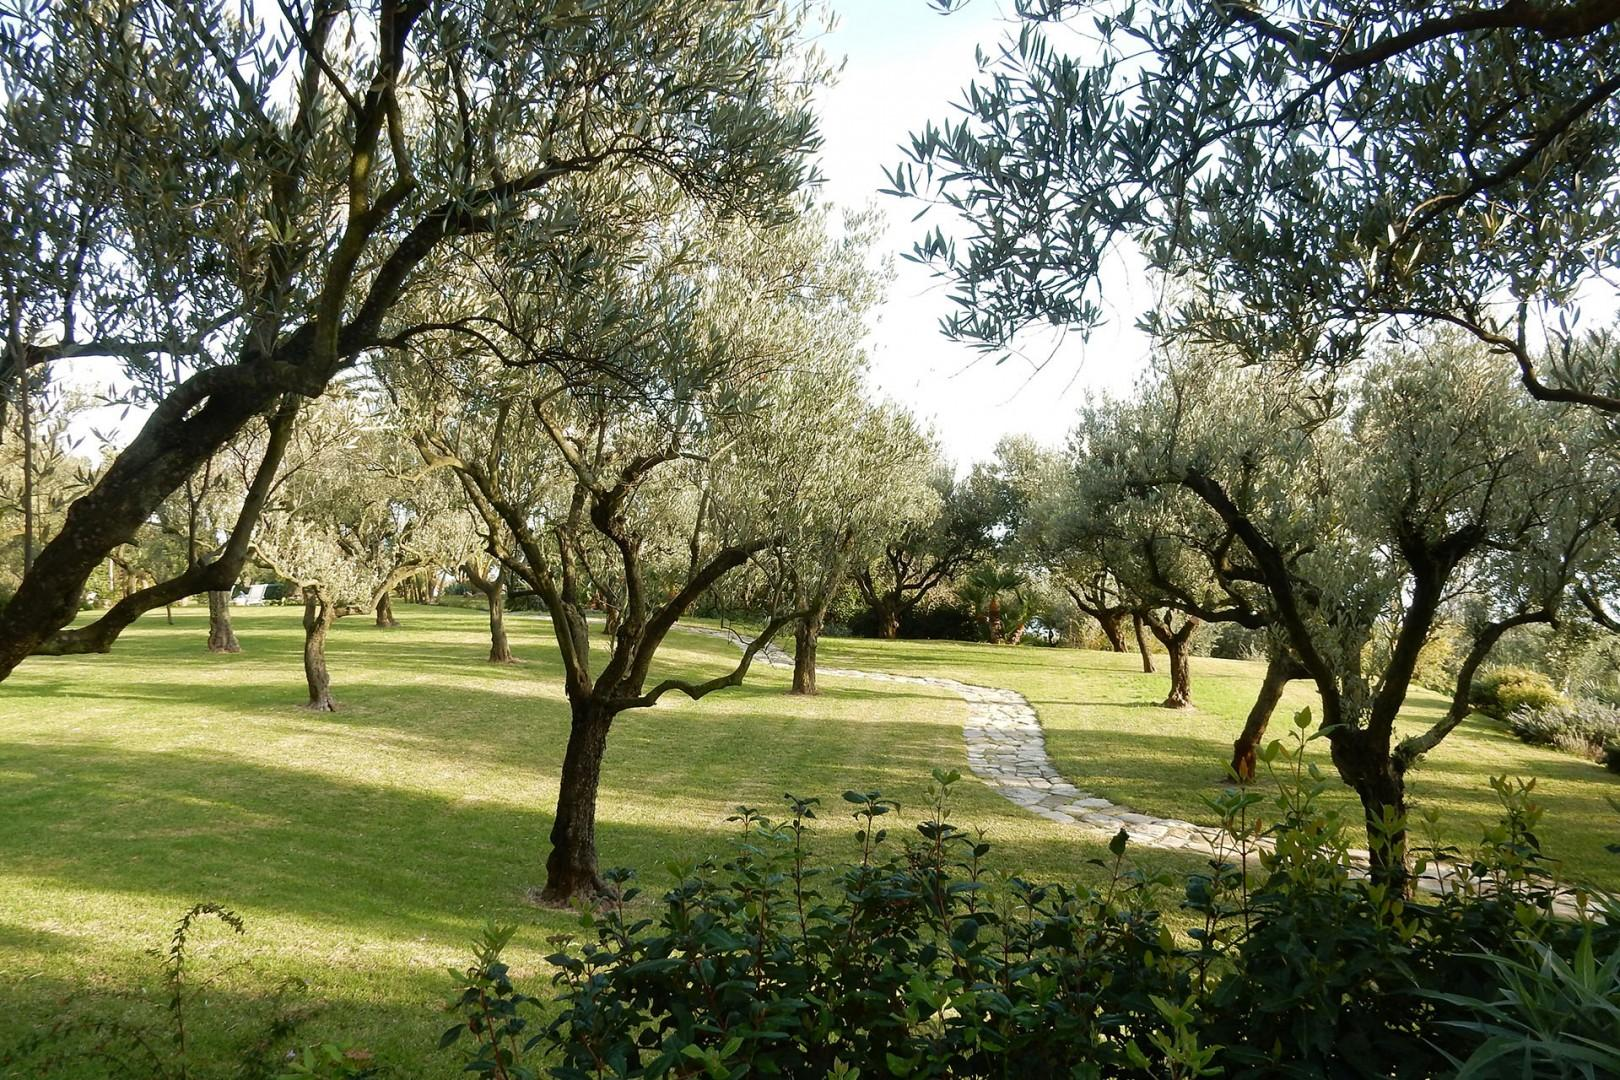 The olive grove on the property is a quiet place to appreciate these ancient trees.